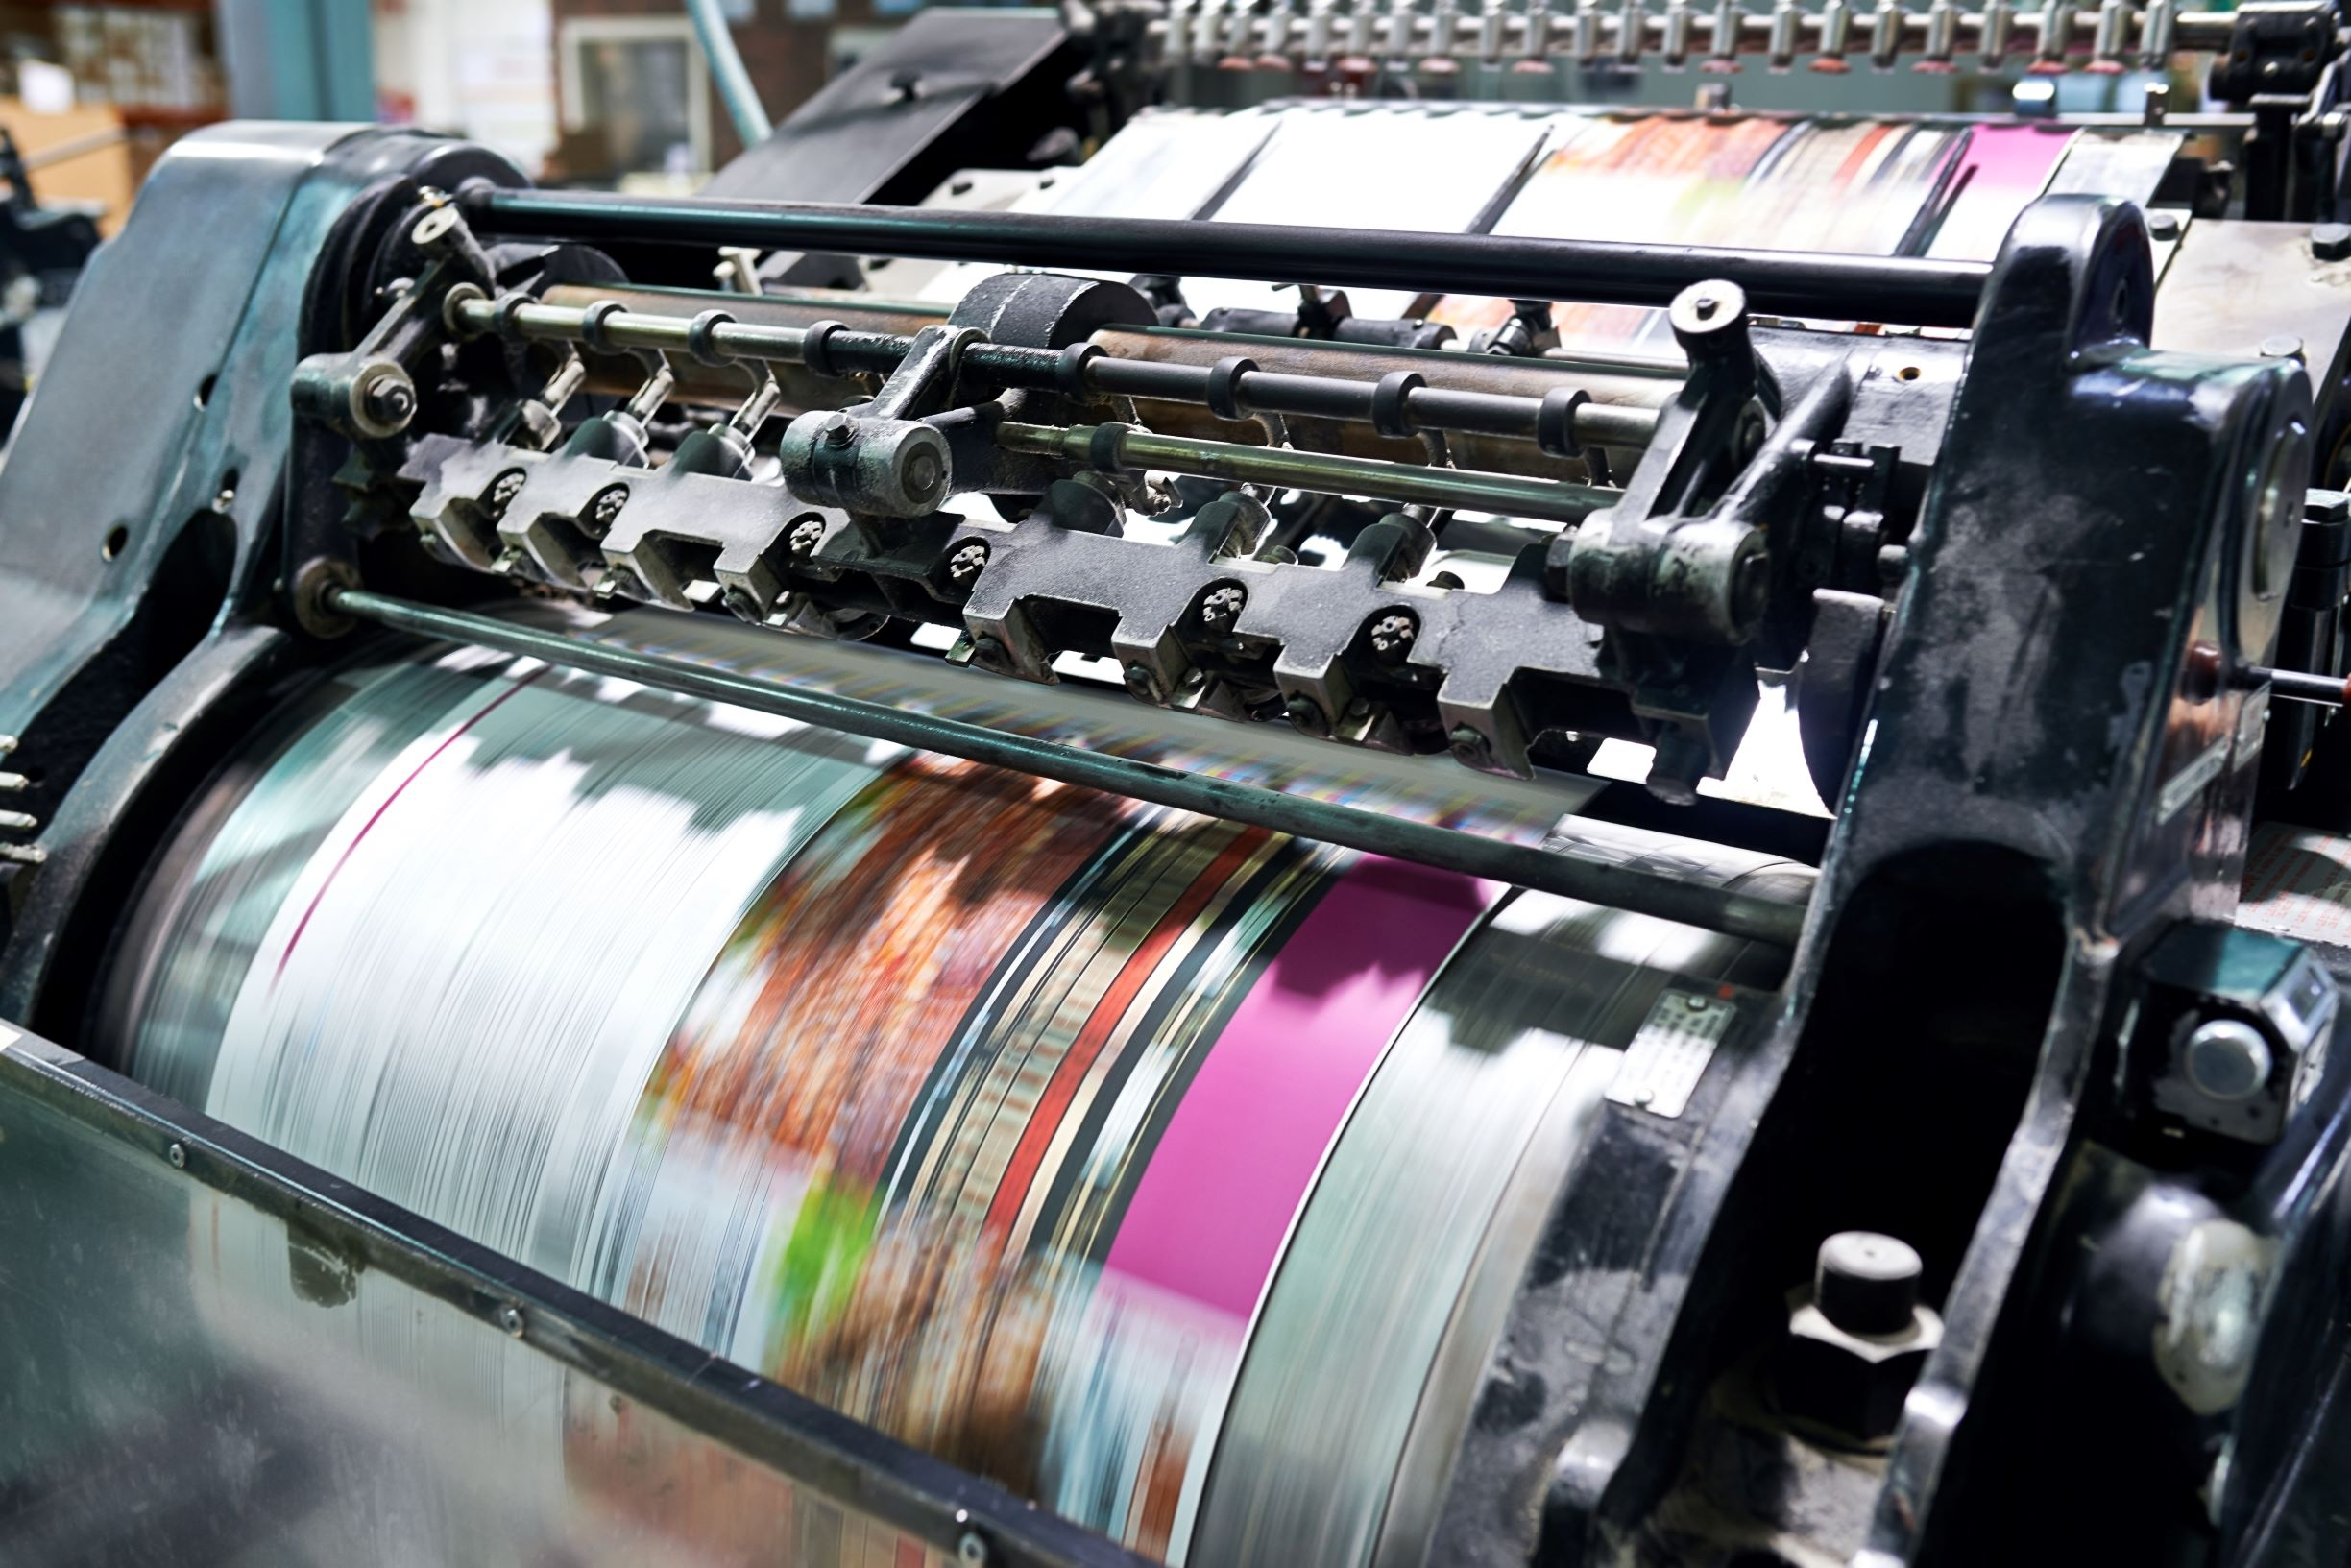 Commercial printing services companies